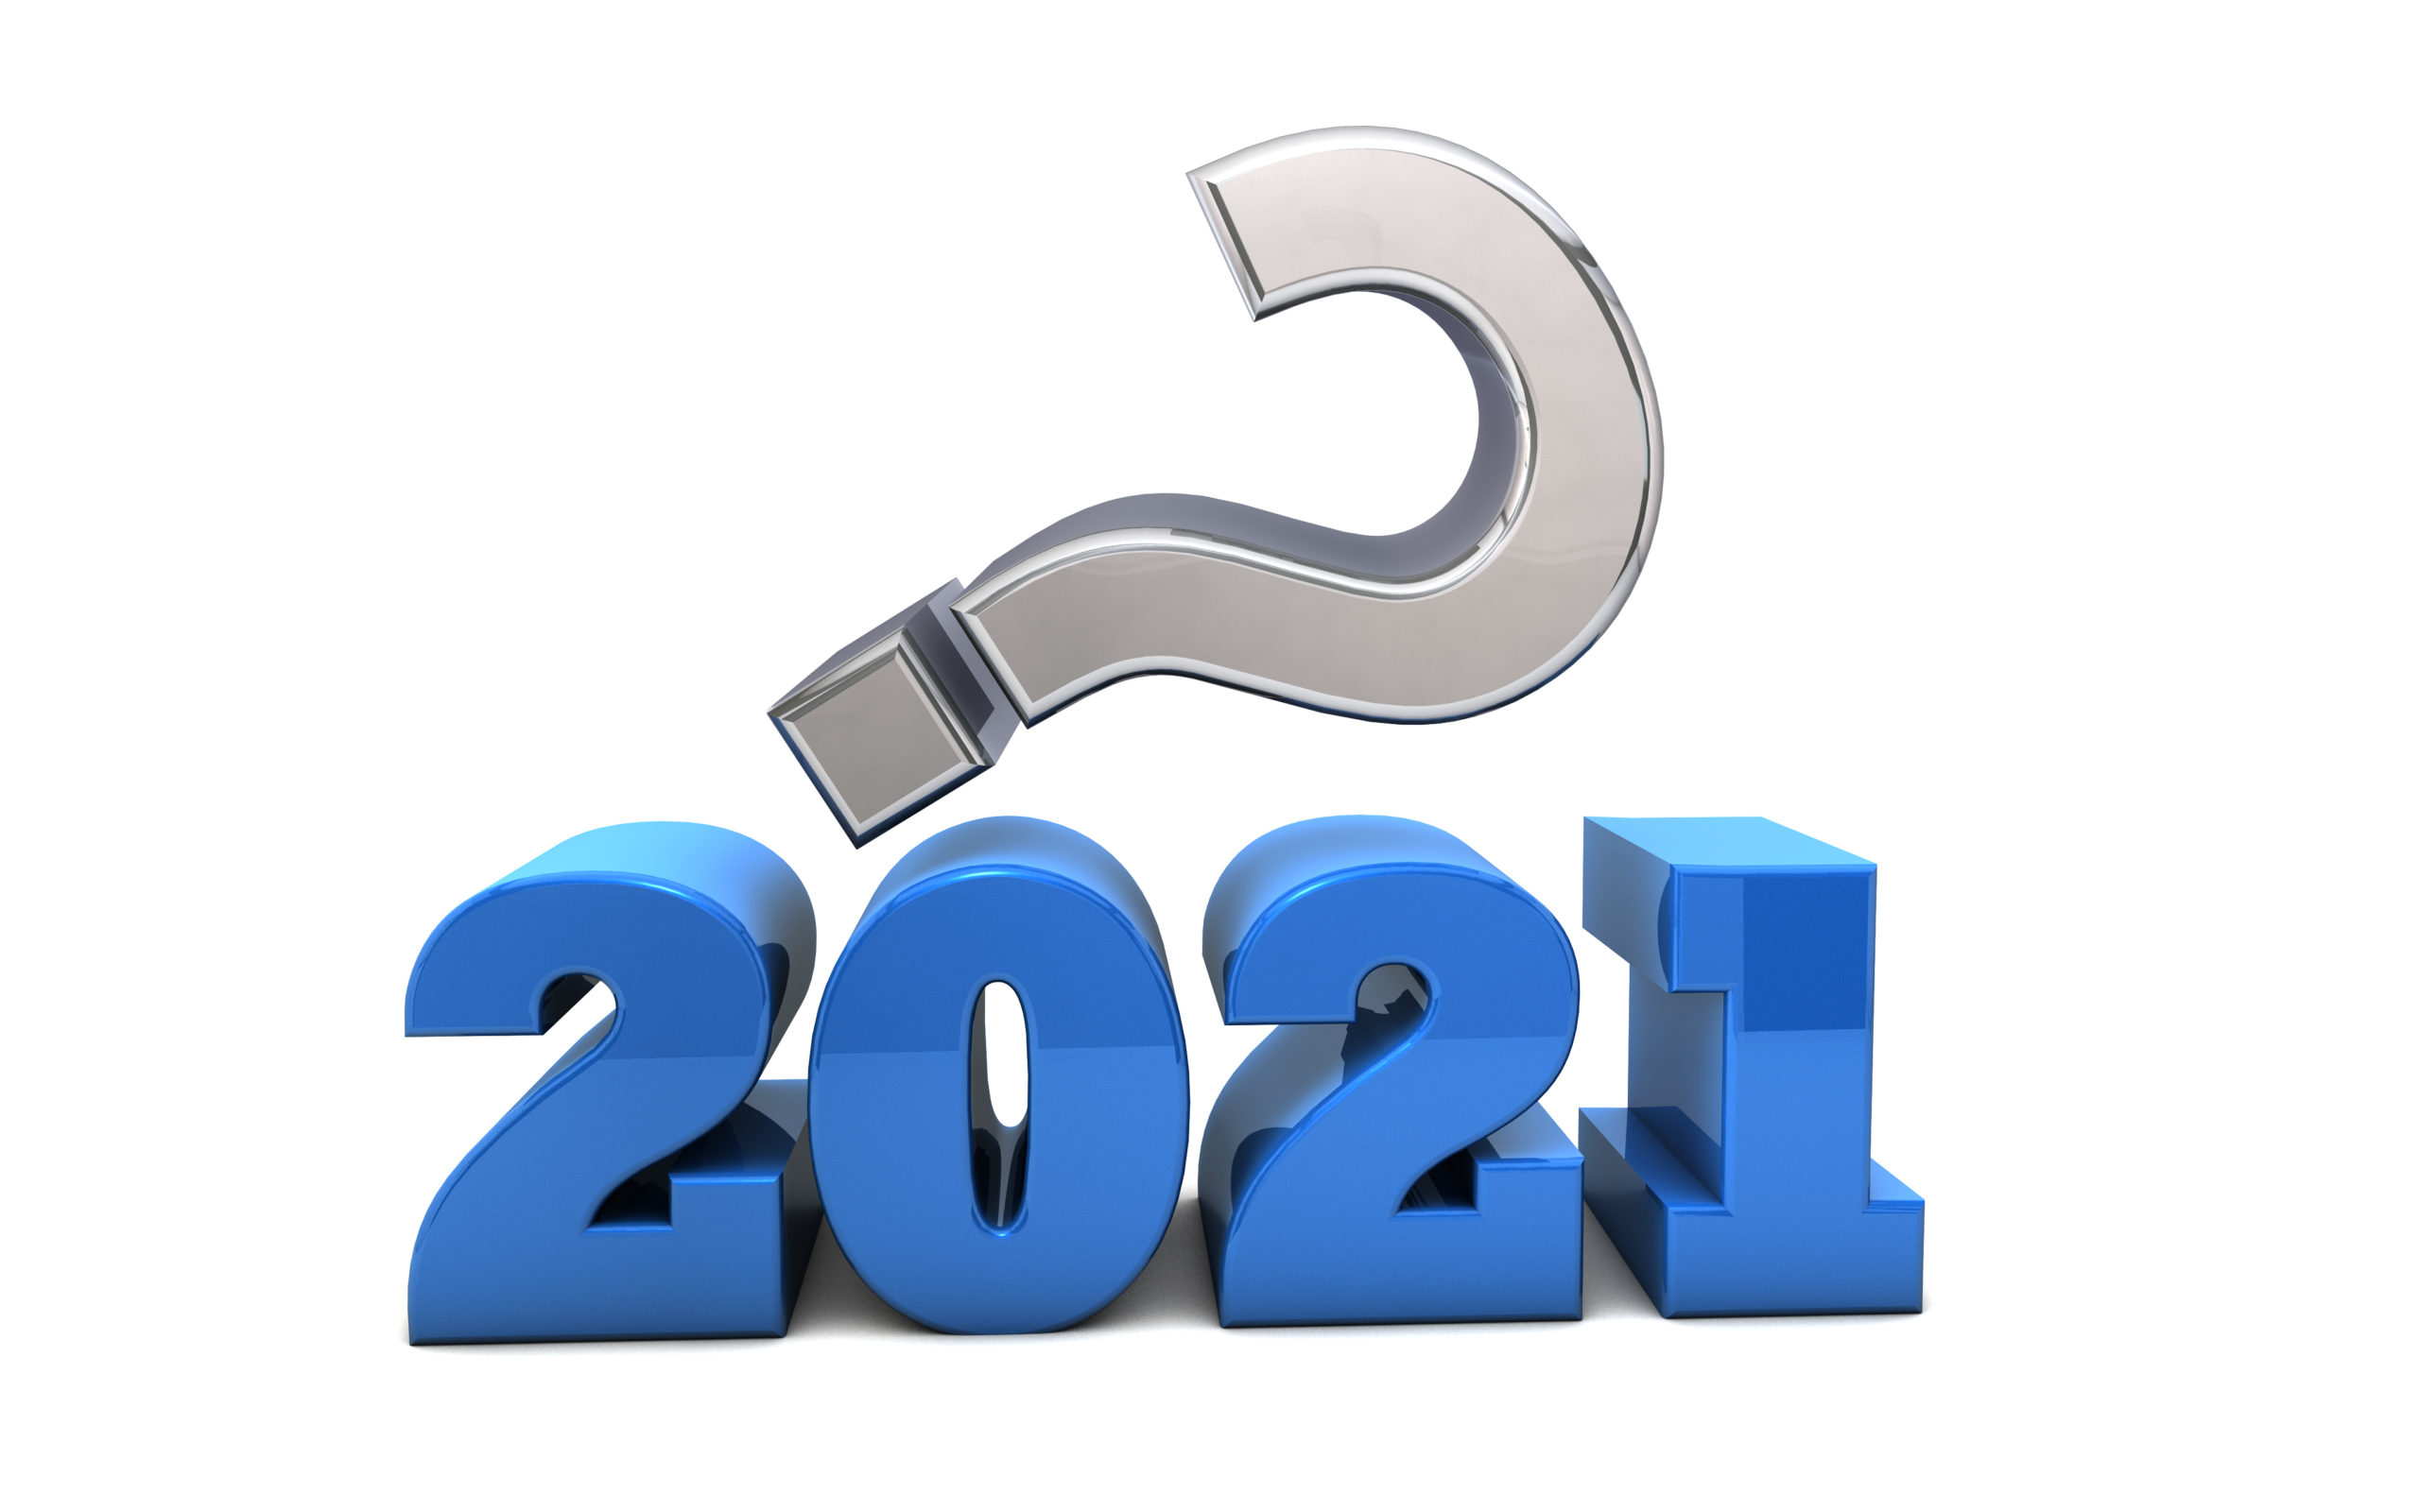 2021 - What does the future hold